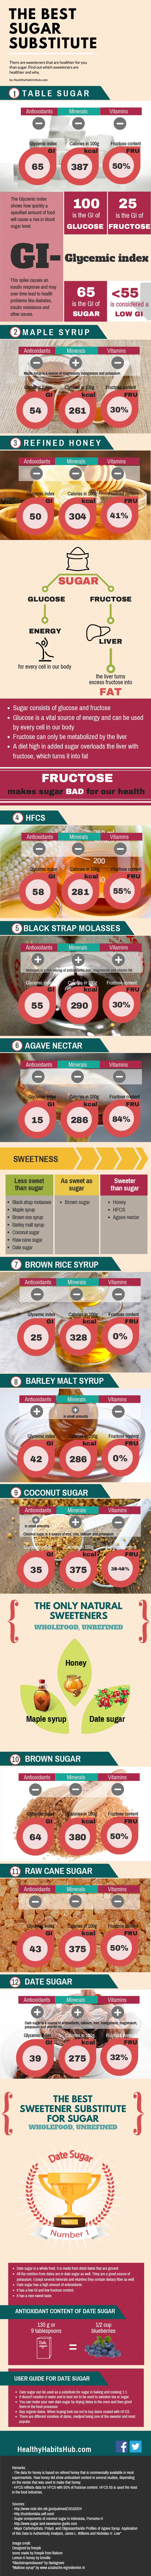 infographic sugar substitutes